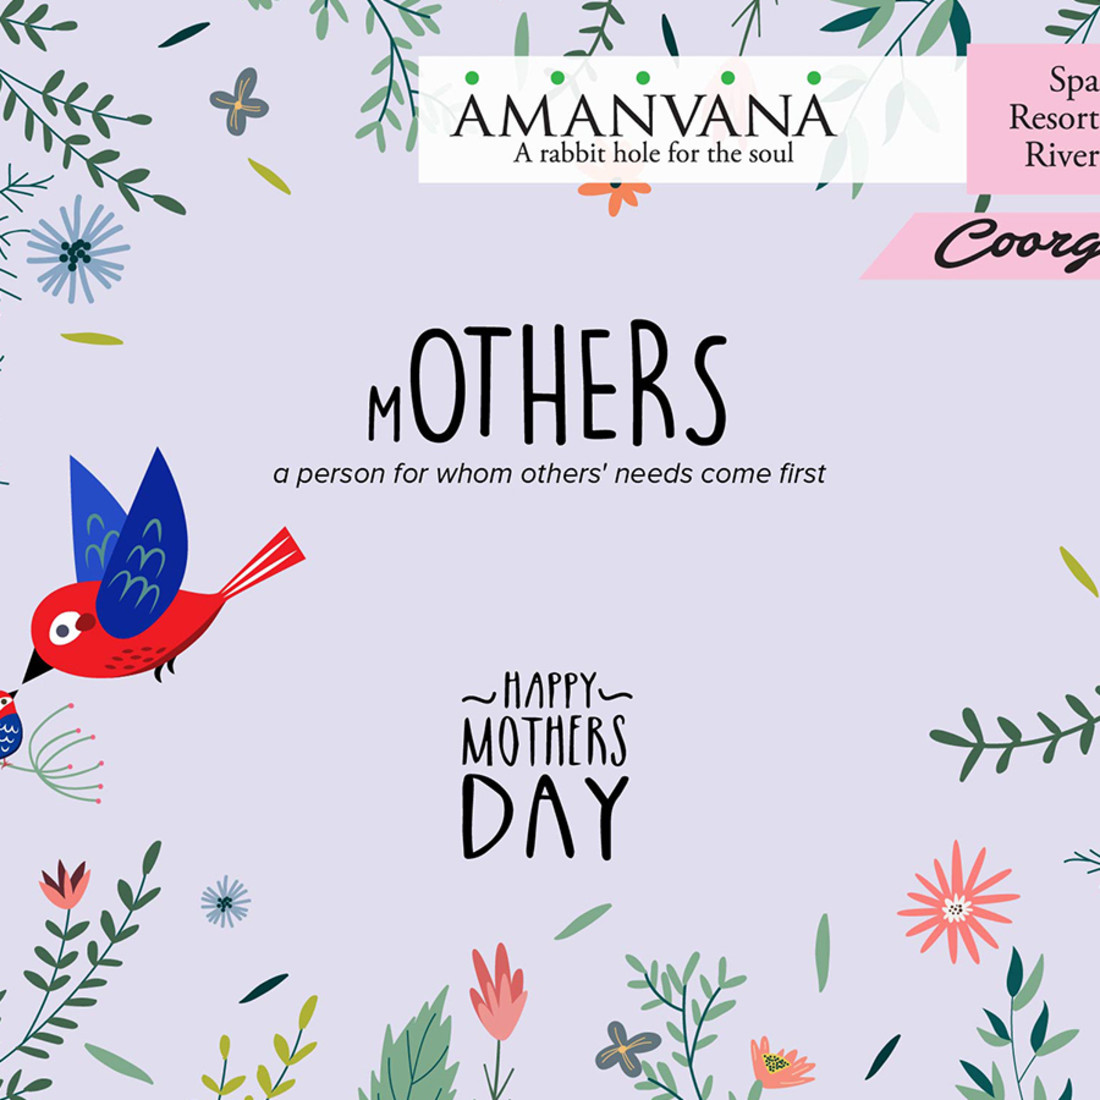 Mothers Day- Amanvana Spa Resort Coorg